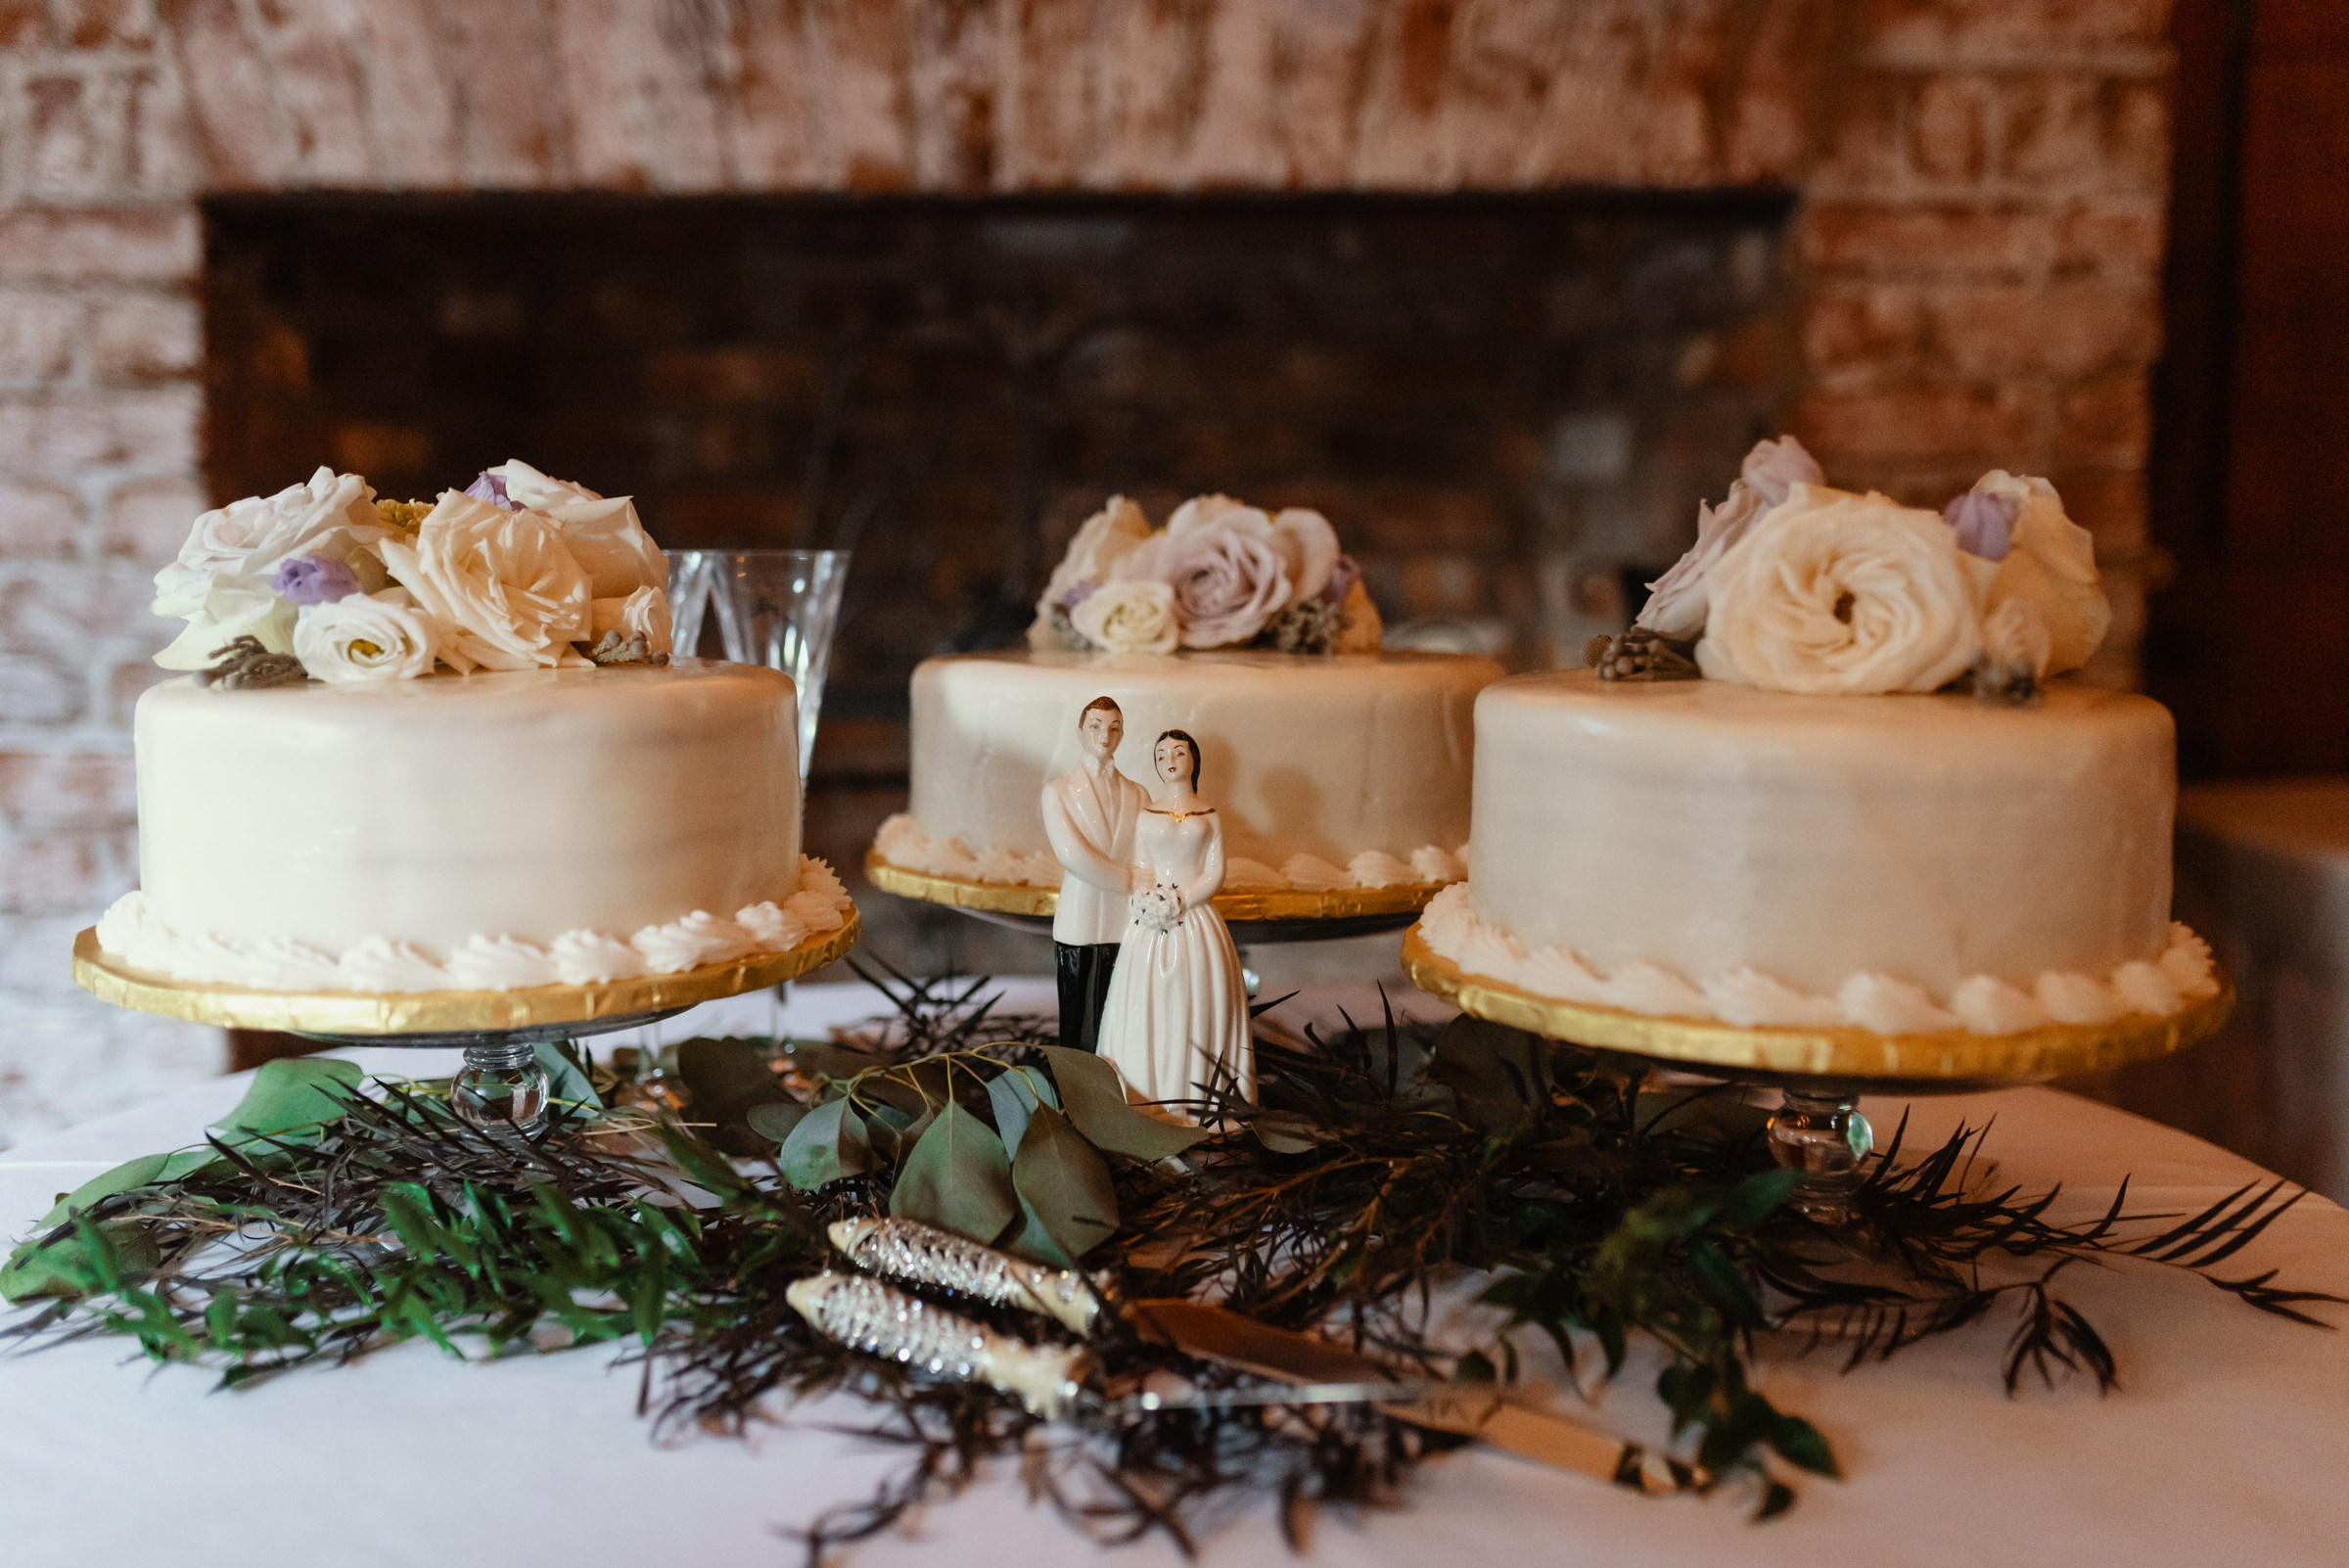 three wedding cakes with bride and groom statuette - photo by Dark Roux